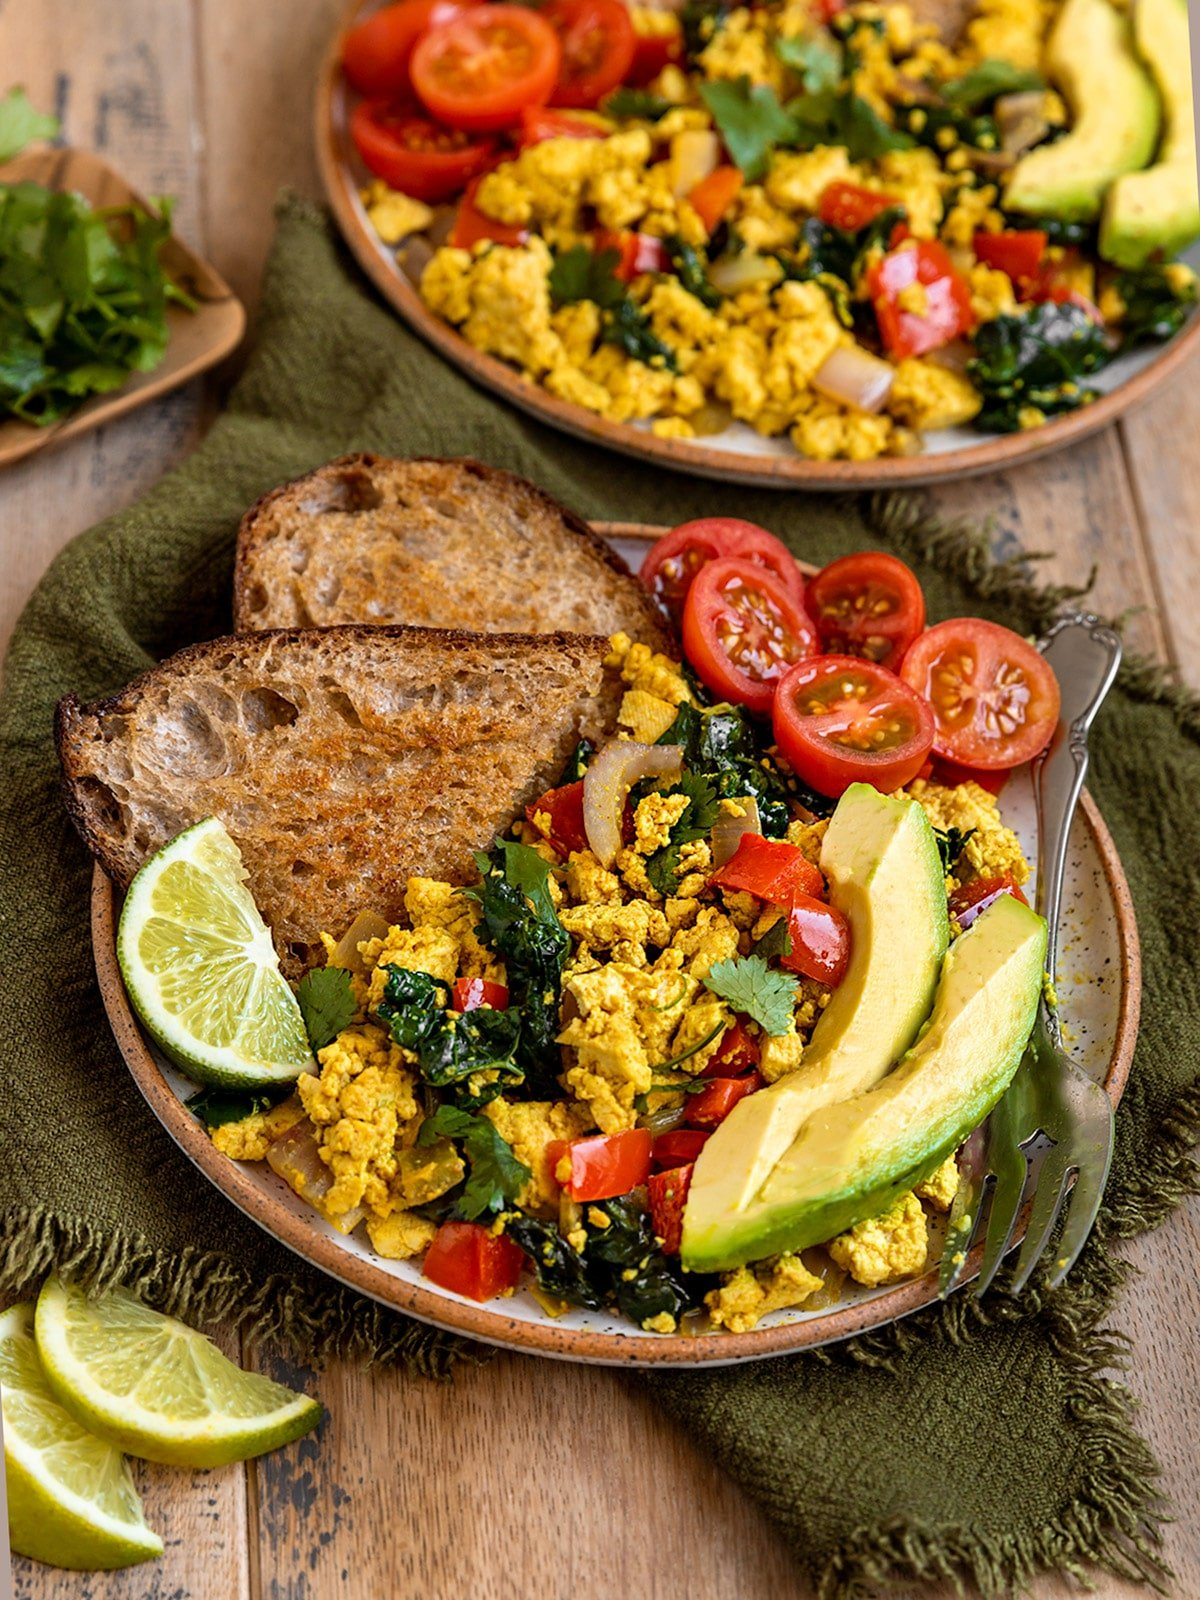 two plates topped with a tofu scramble, vegetables, avocado, cherry tomatoes, toast, and a lime wedge